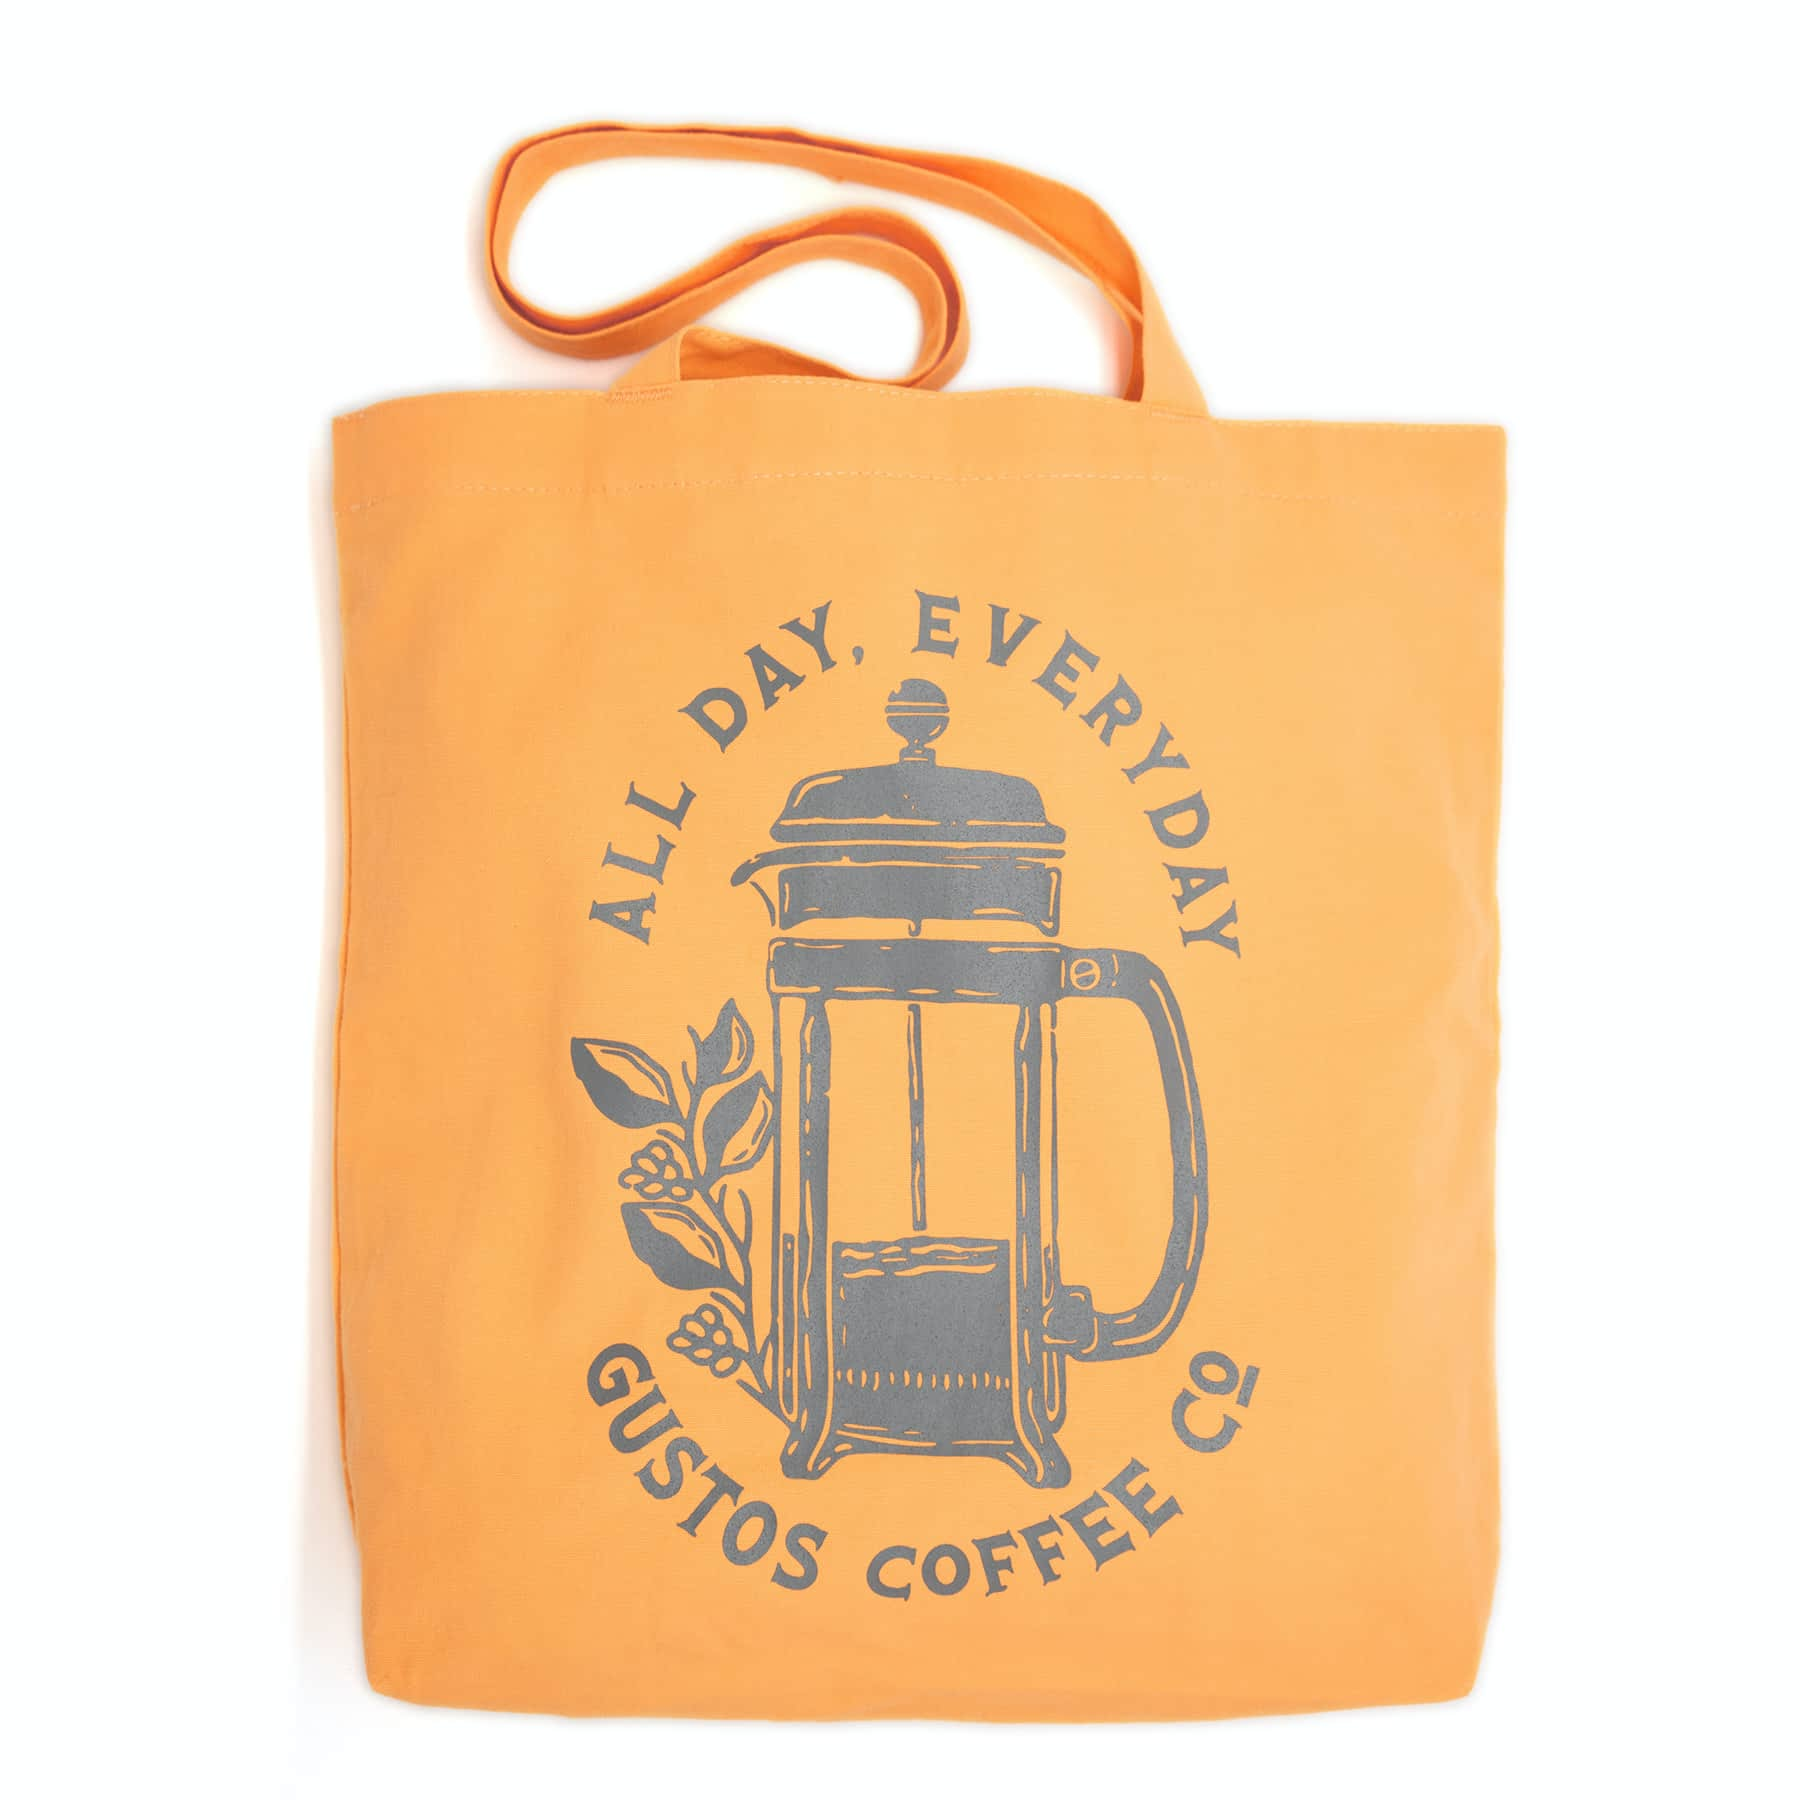 Gustos Coffee From Puerto Rico Merchandise Tote Canteloupe Season 2020 SJ